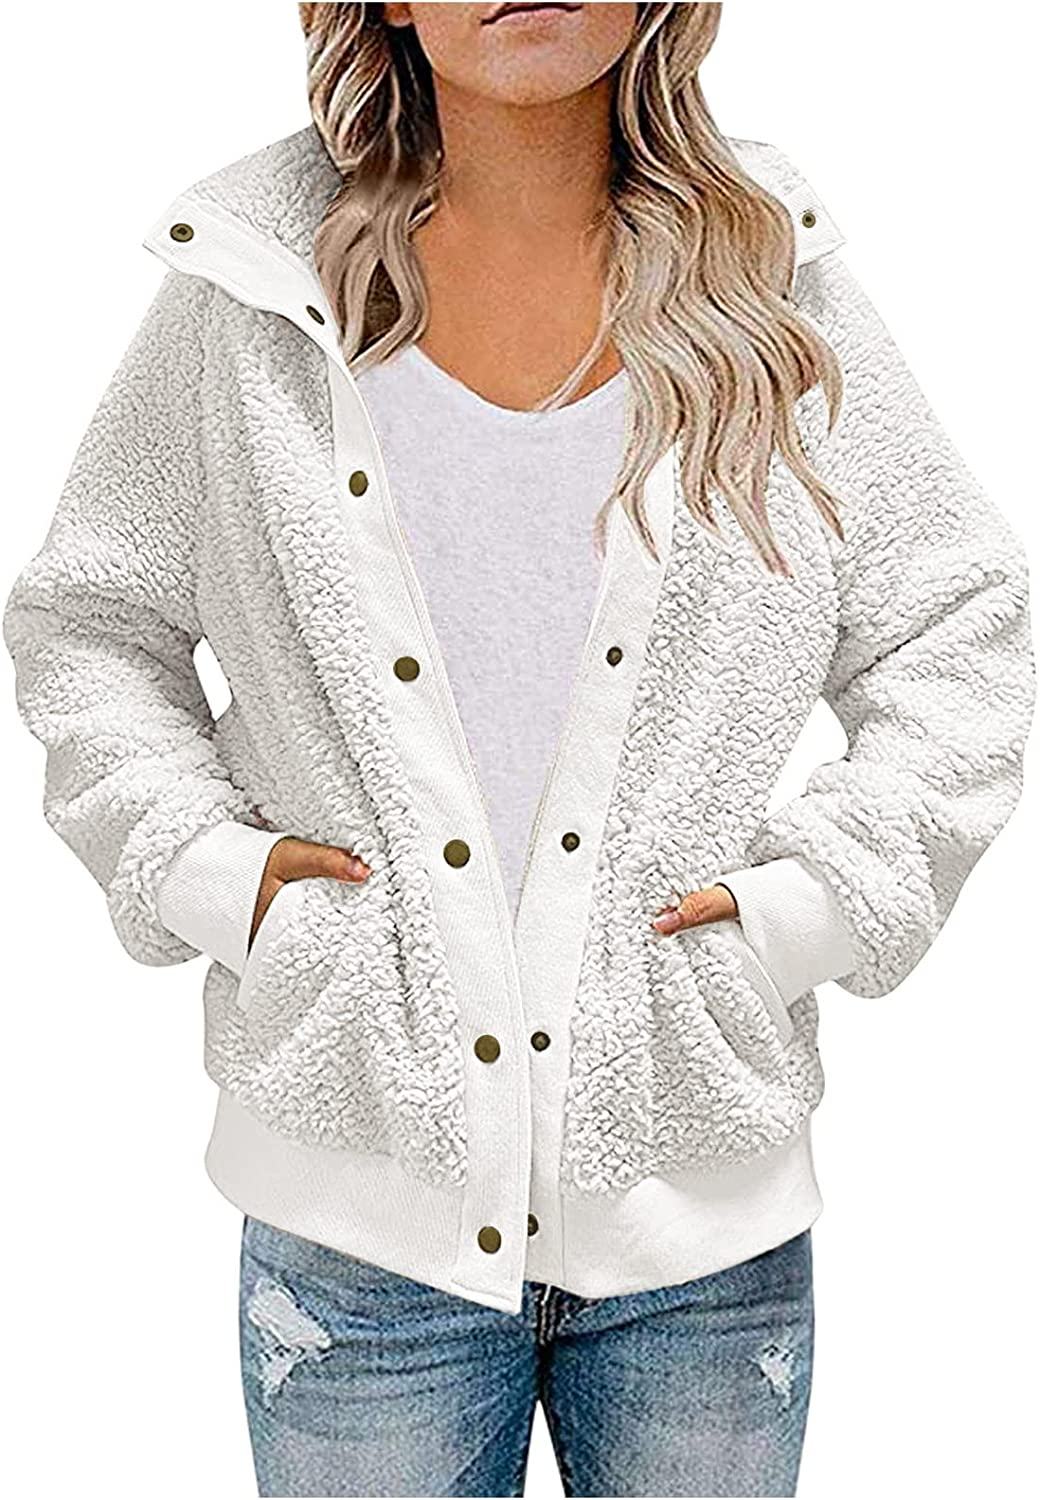 977 Womens Casual Warm Faux Fuzzy Pockets Coat Jacket Winter Loose Fit Button Solid Long Sleeve Outerwear Hoodie